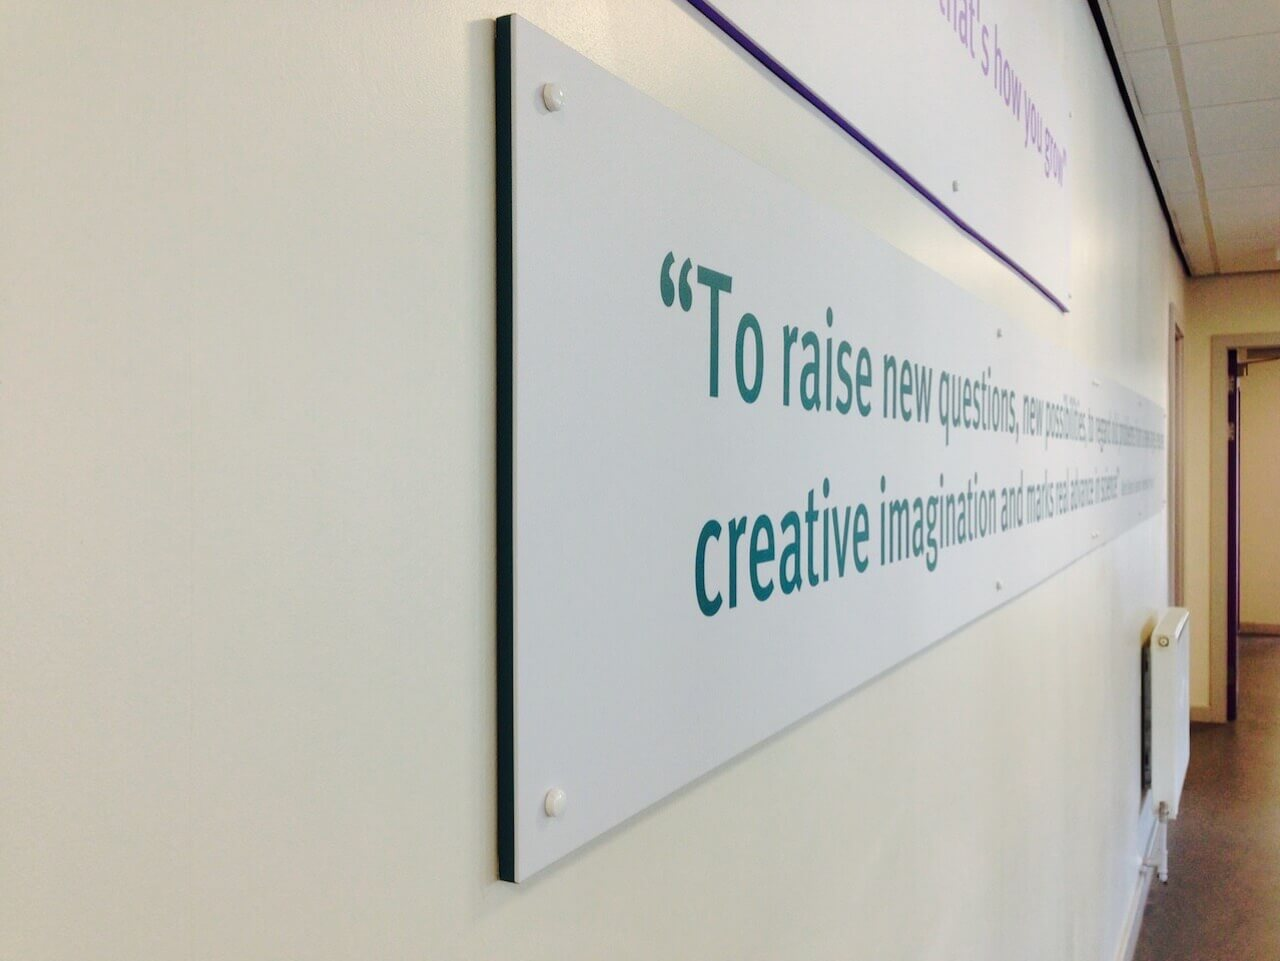 Wall mounted quotes line corridors at South Tyneside College